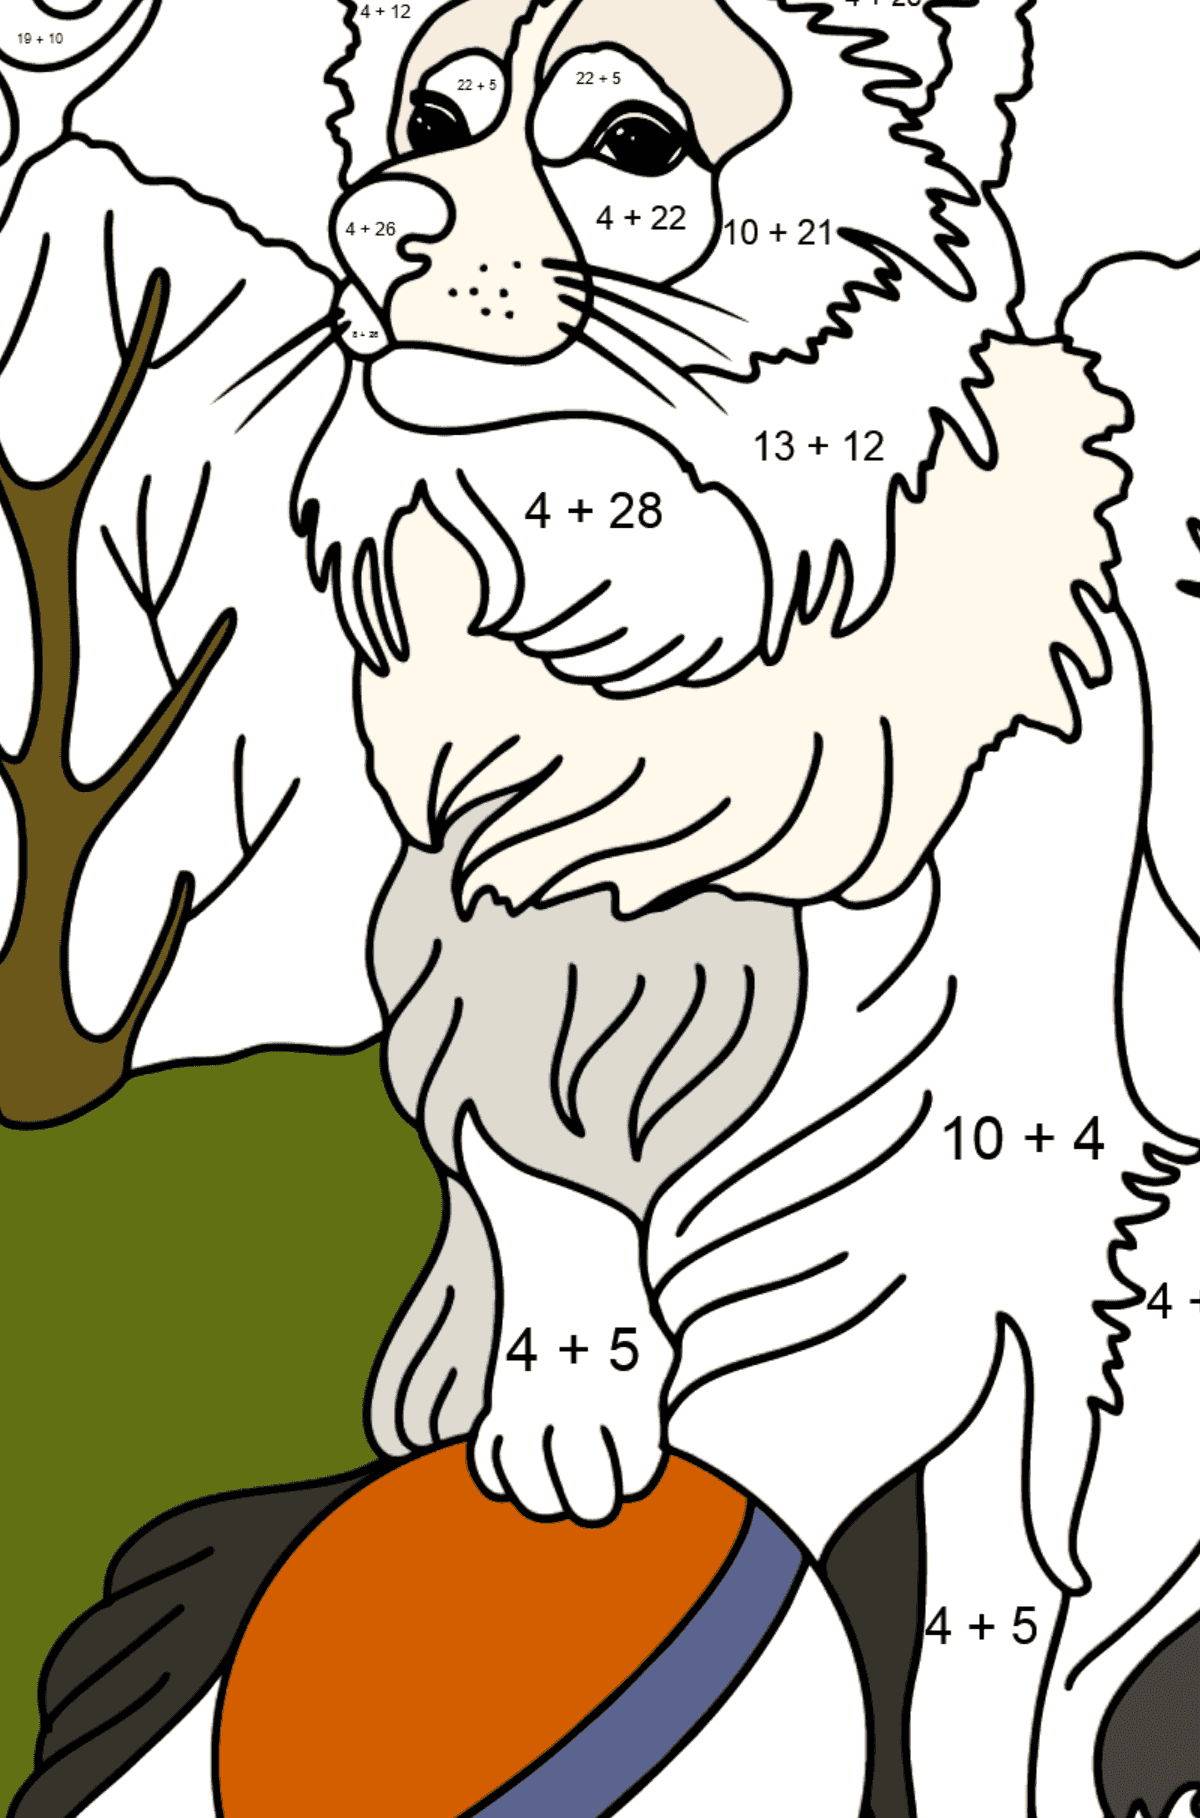 Collie coloring page - Math Coloring - Addition for Kids